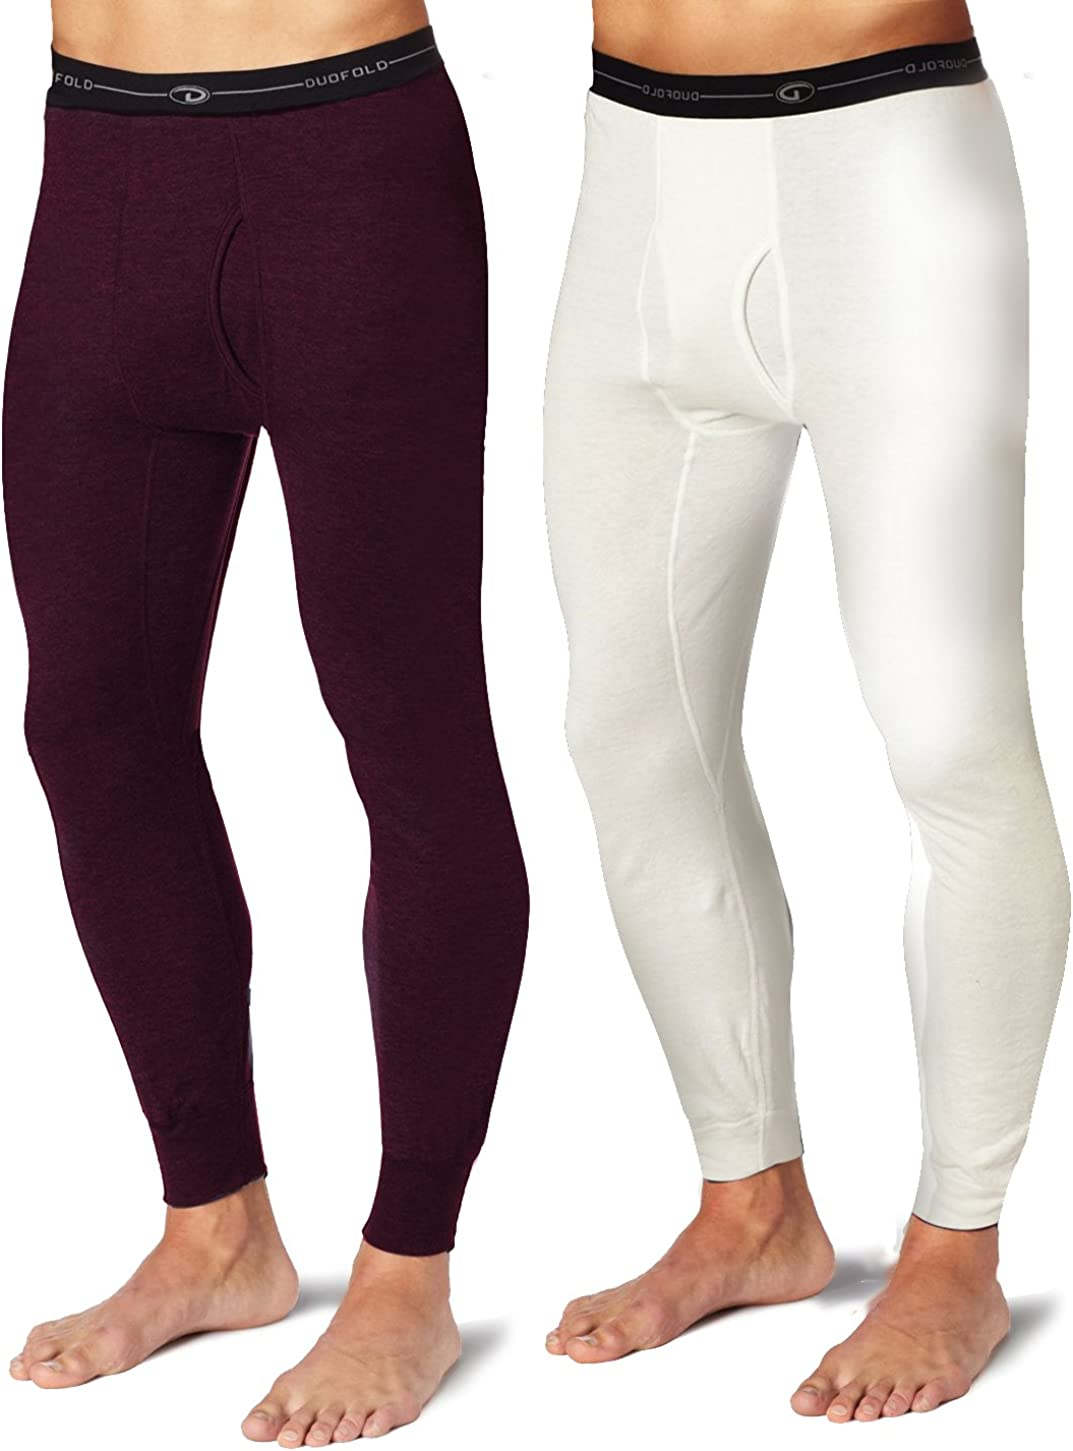 Duofold KMW2 Men's Mid Weight Wicking Thermal Pant 1 Bordeaux Red + 1 Winter White